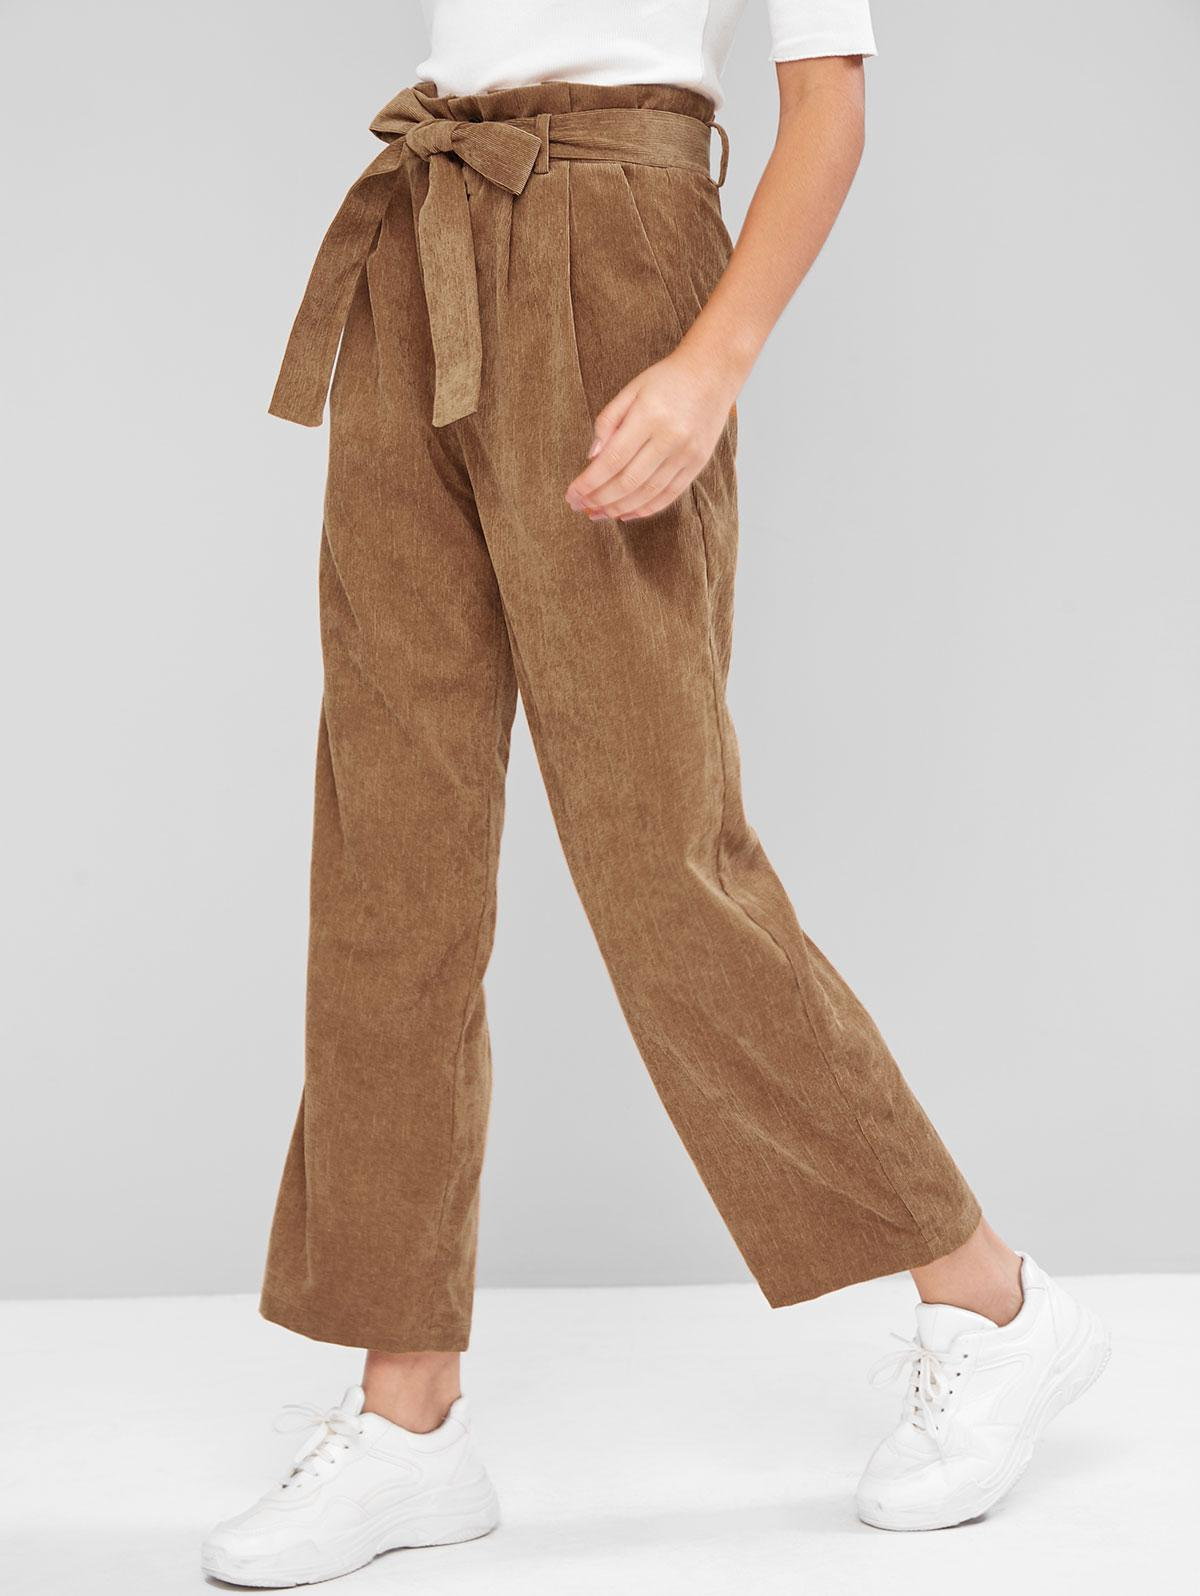 ZAFUL Belted Straight Corduroy Paperbag Pants